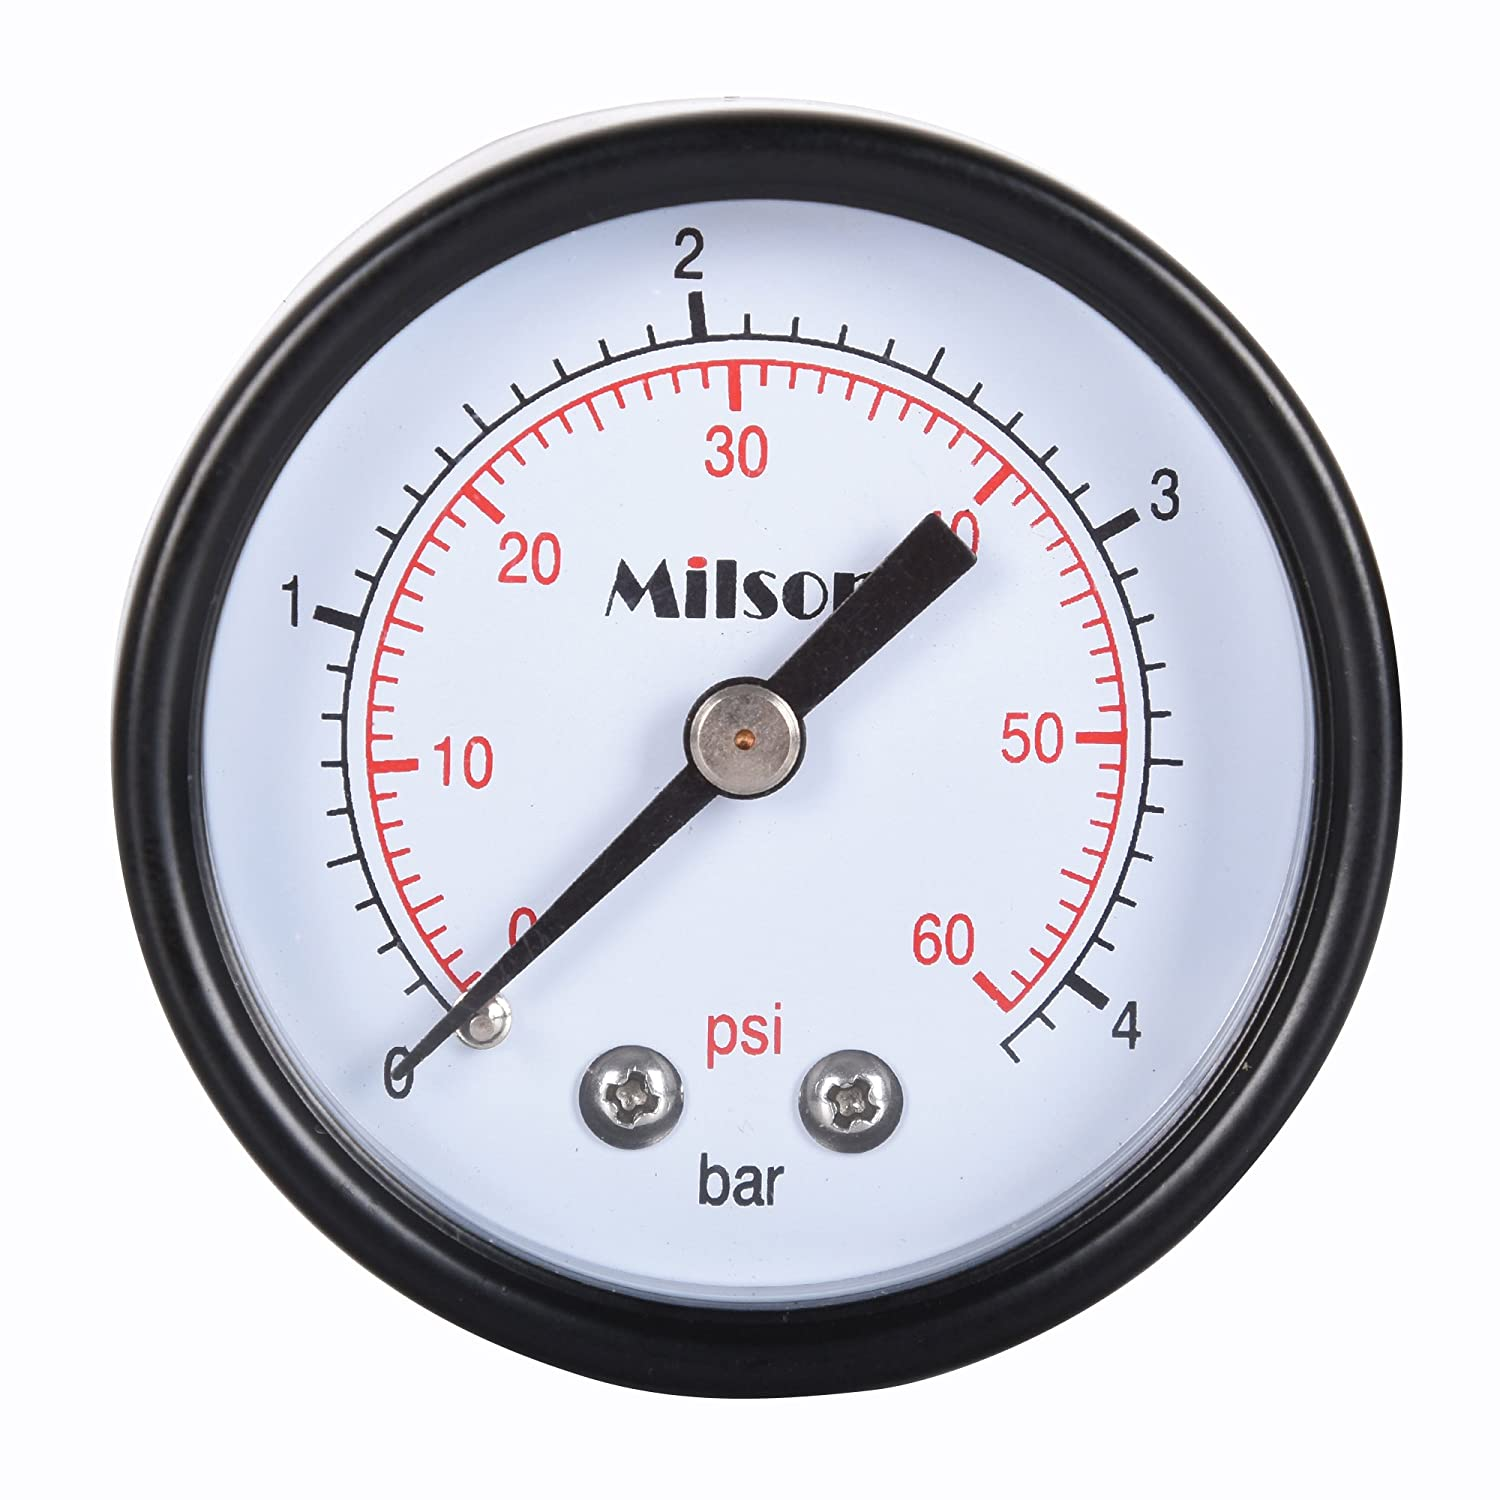 Milson Pressure Gauge 2 Black Steel Case Back Mount 1 4NPT 0 60 Psi Bar Accuracy 2.0 Brass Internal Multiple Function